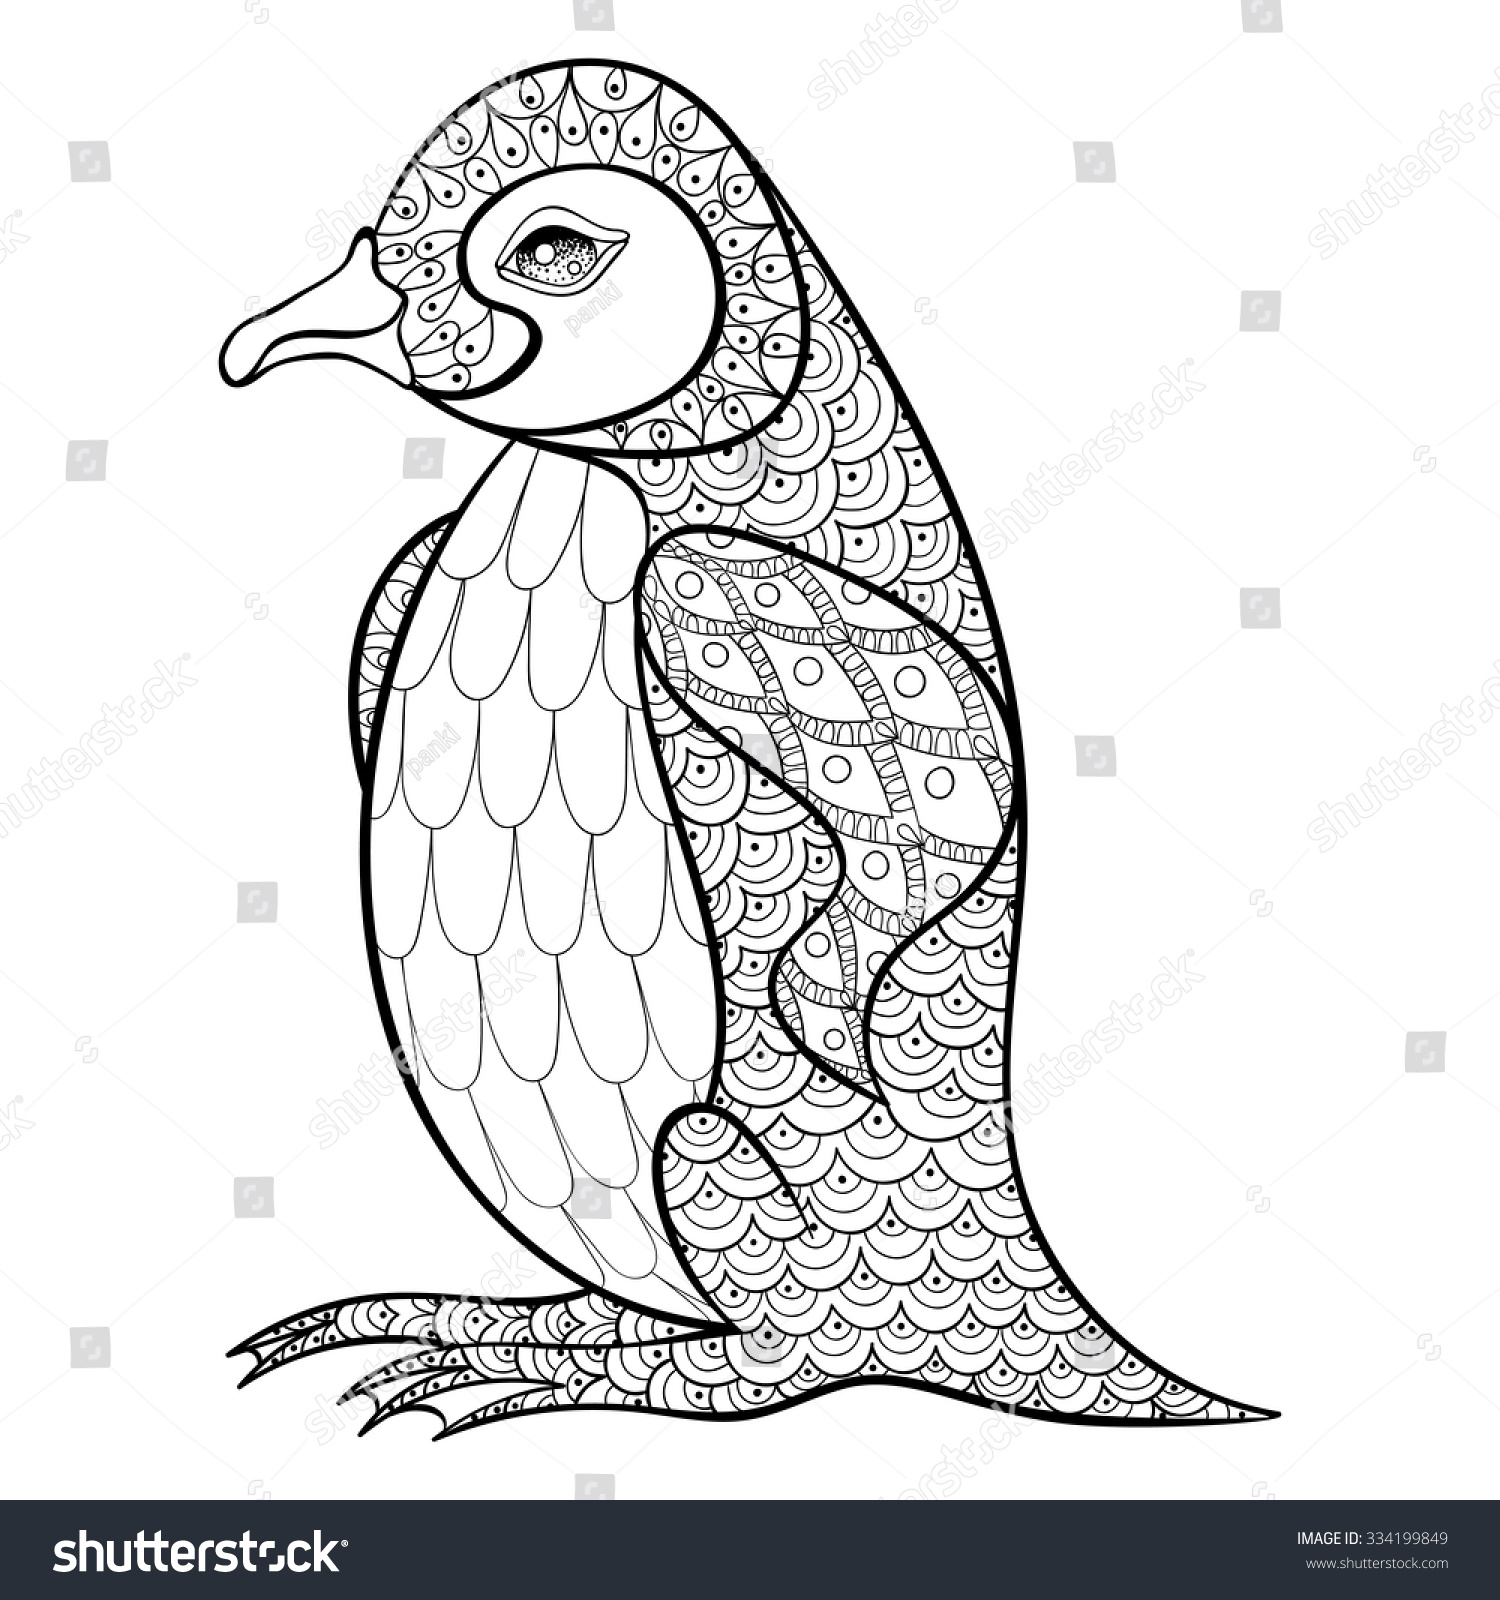 Penguin Adult Coloring Pages